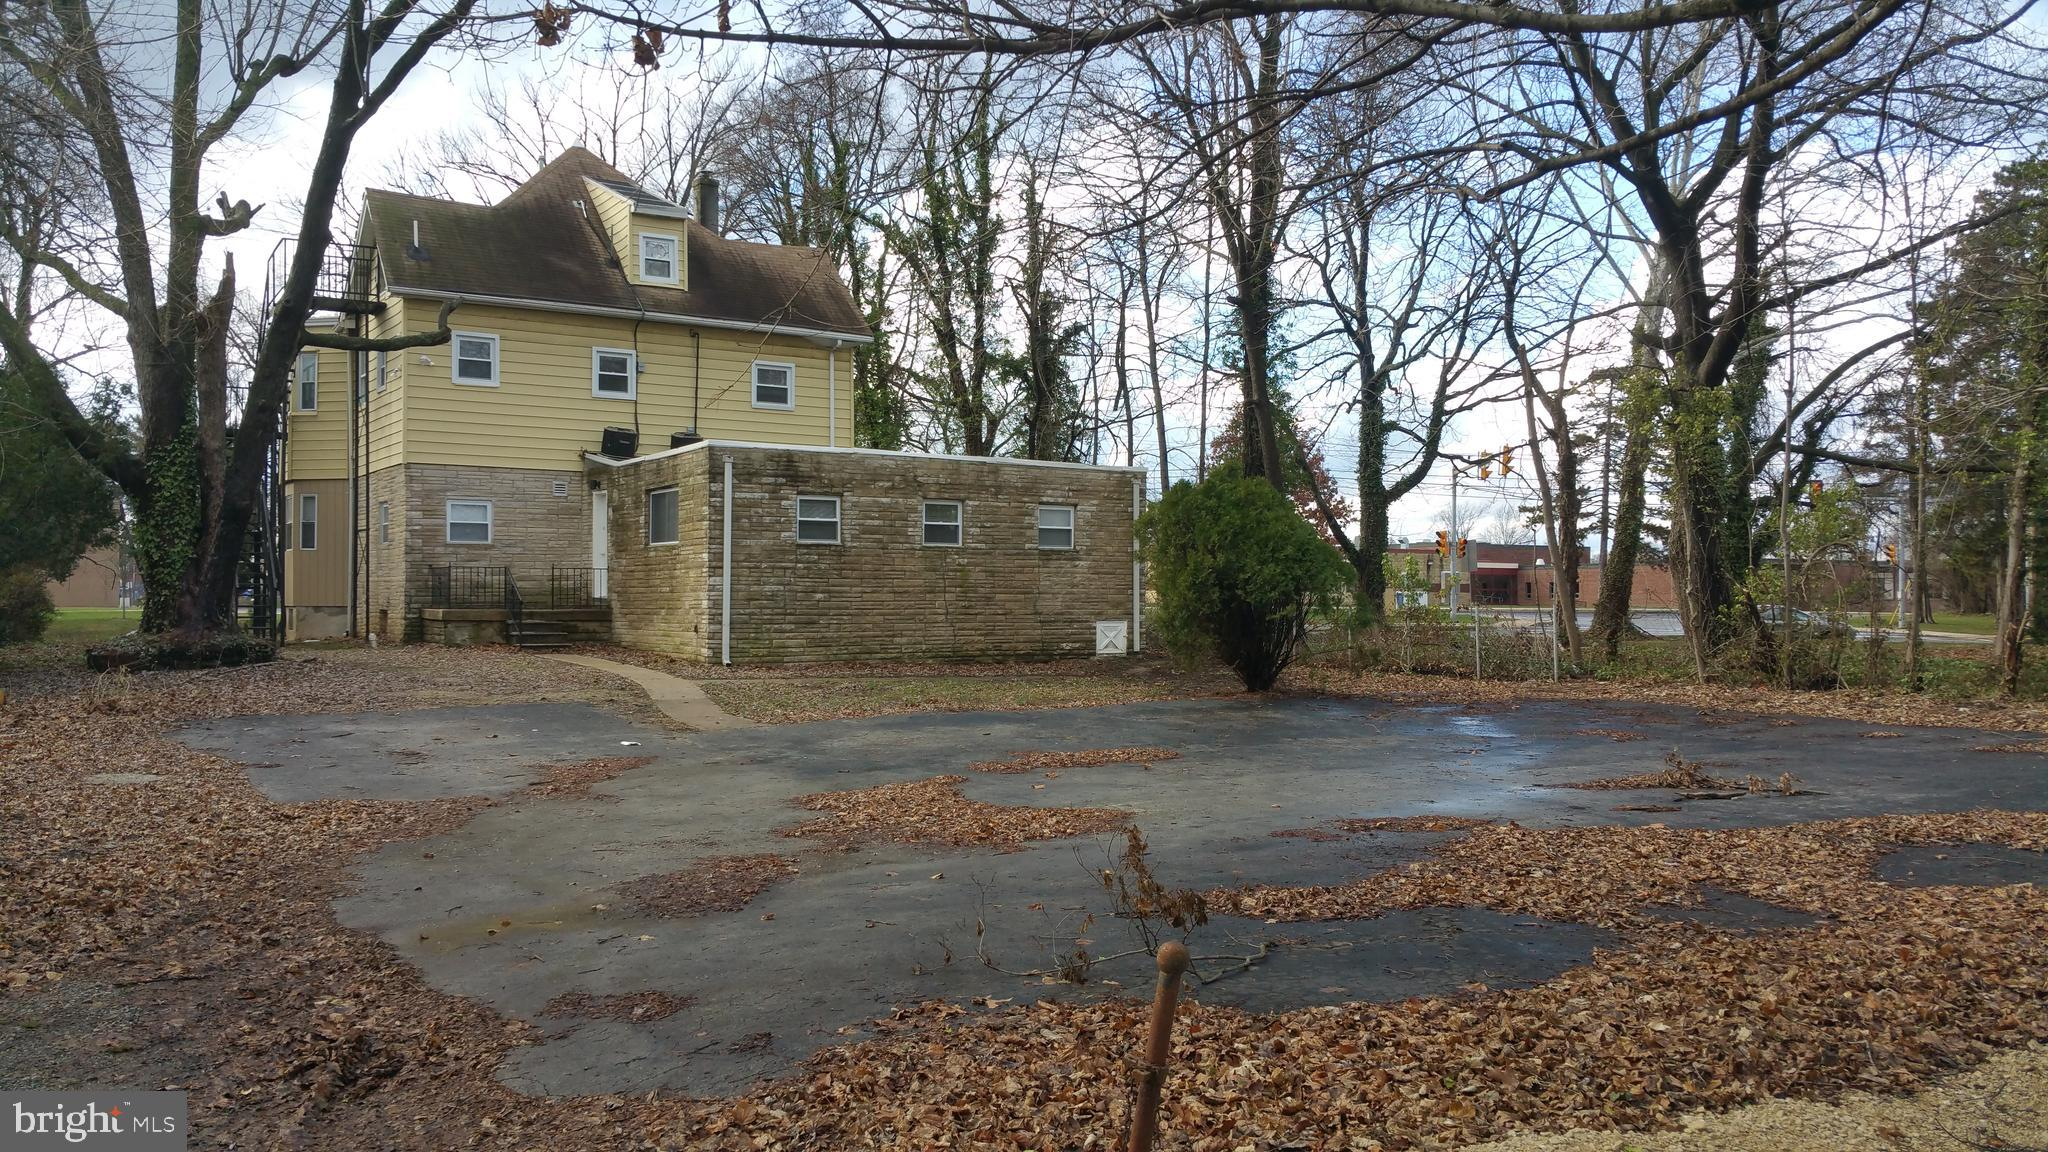 317 CALCON HOOK ROAD, SHARON HILL, PA 19079